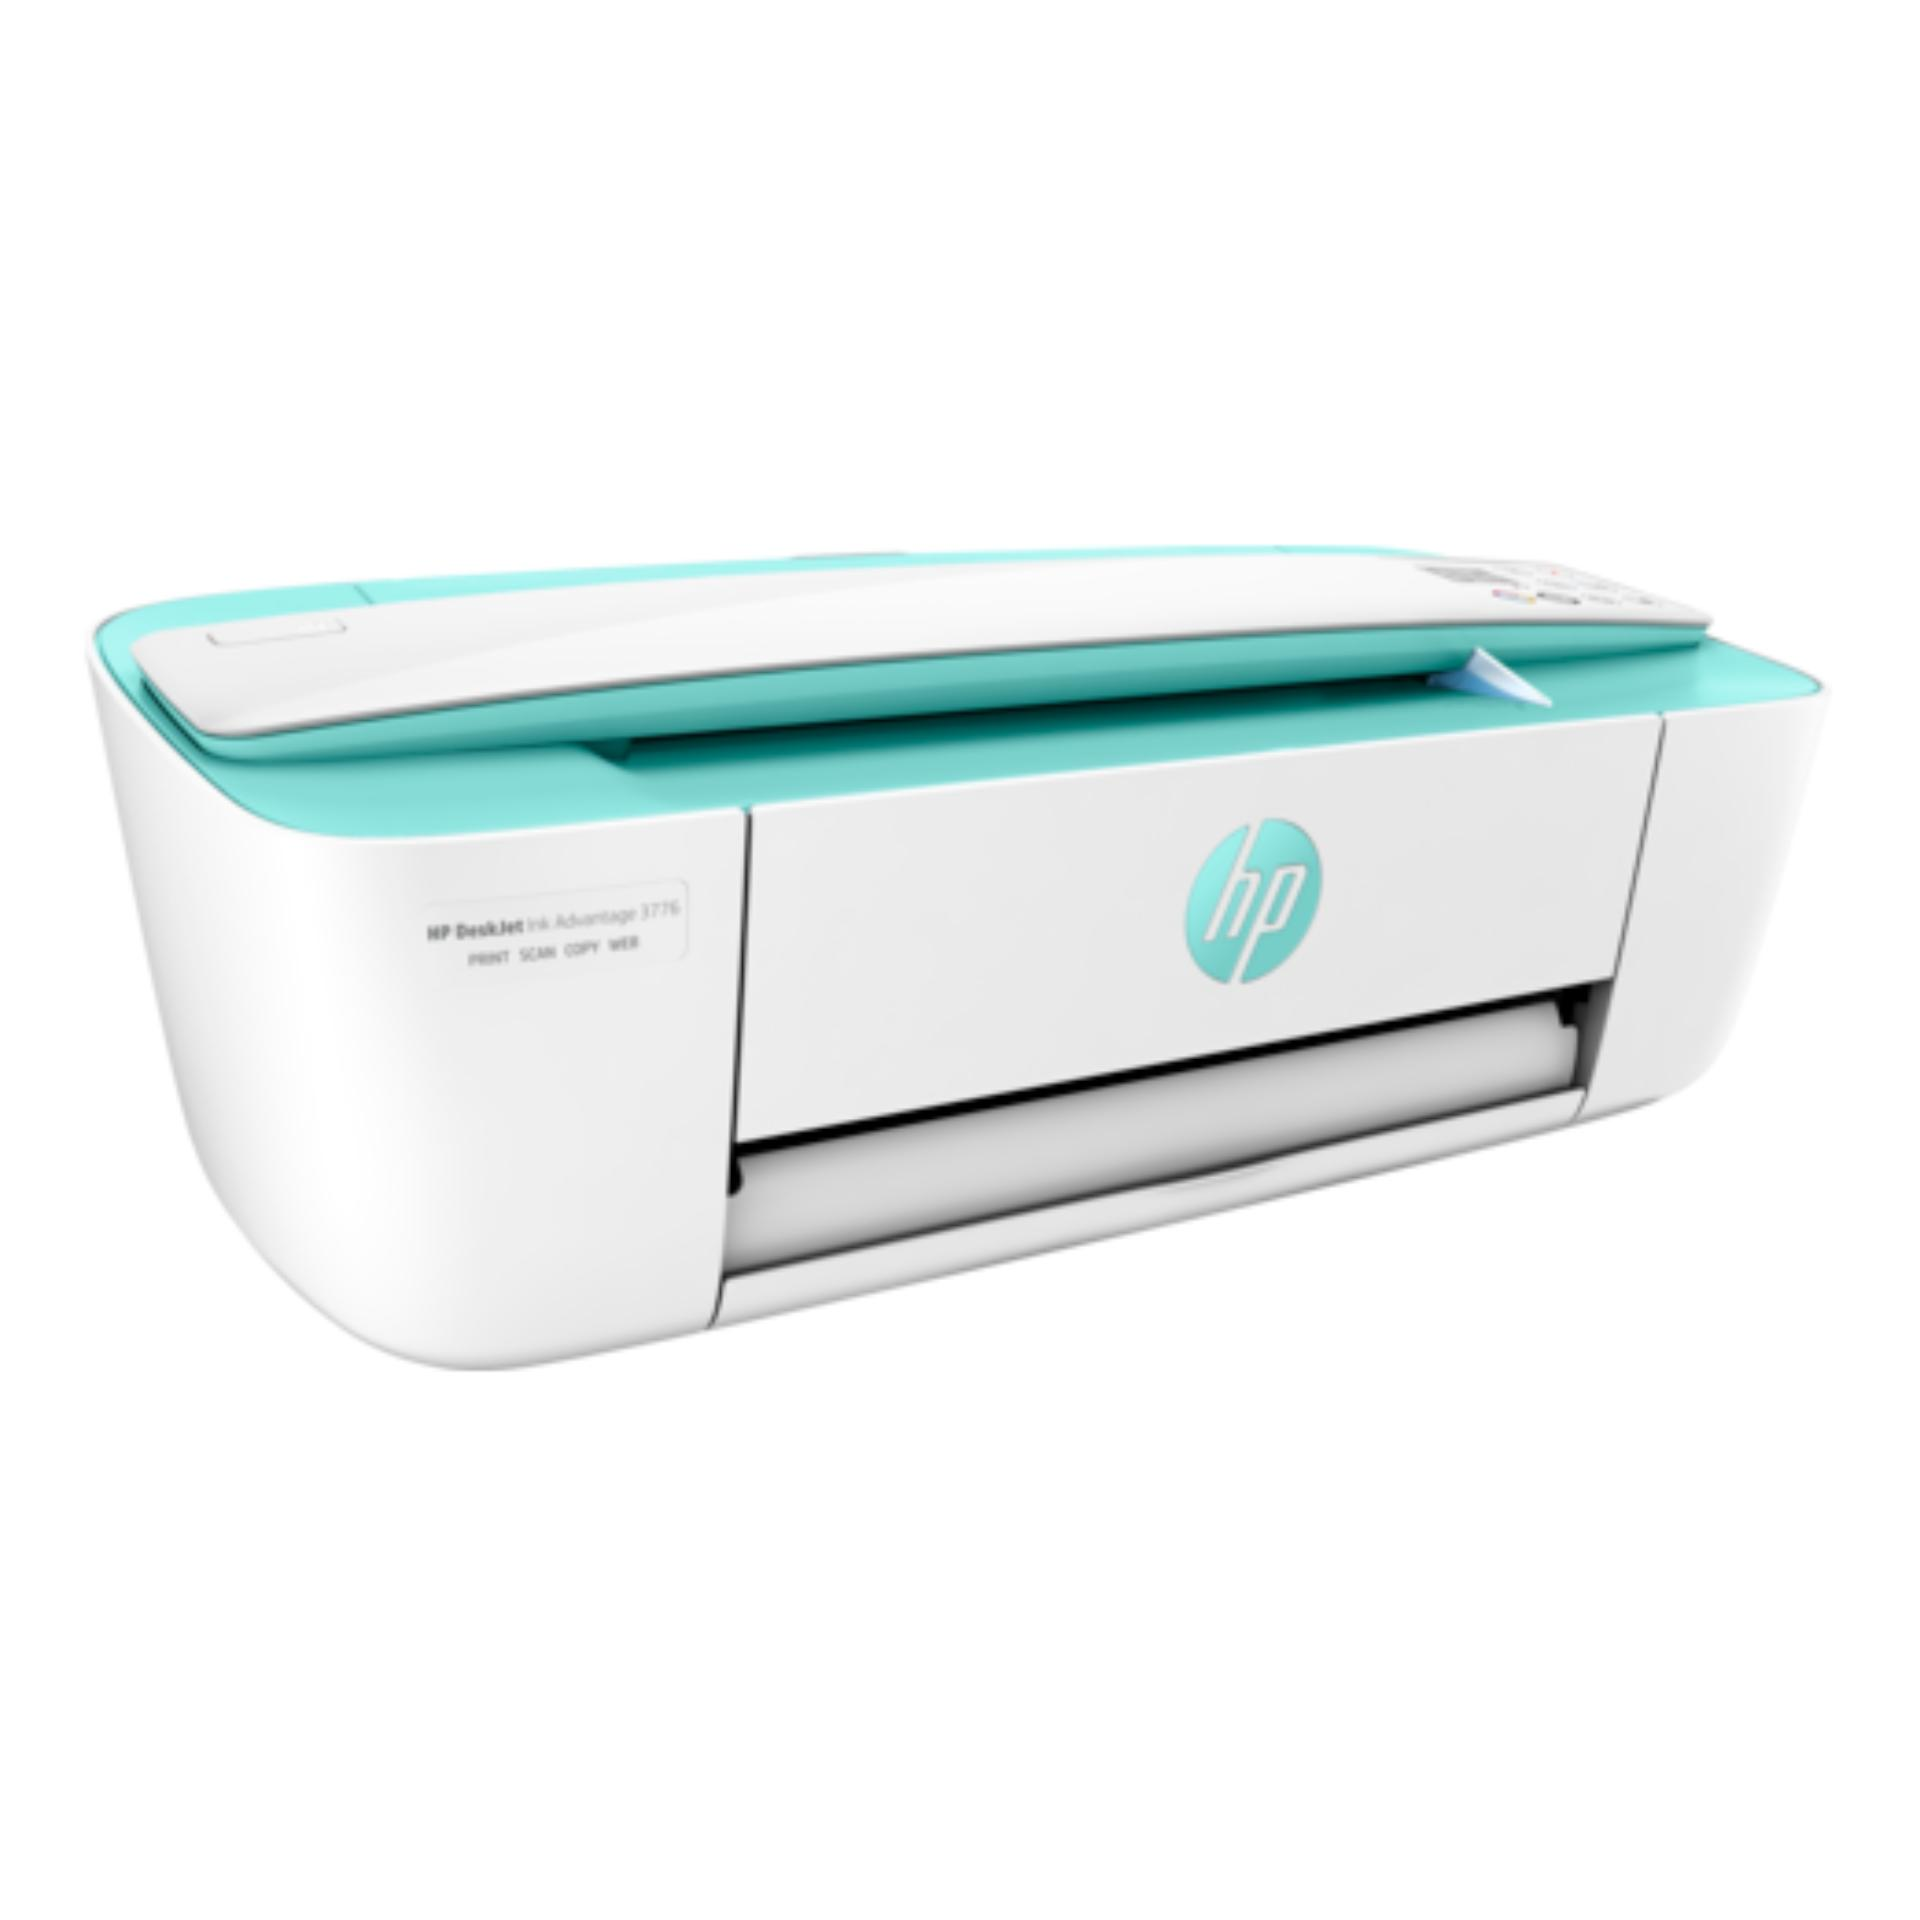 Printer HP DeskJet Ink Advantage 3776 (T8W39B) - Hijau Putih